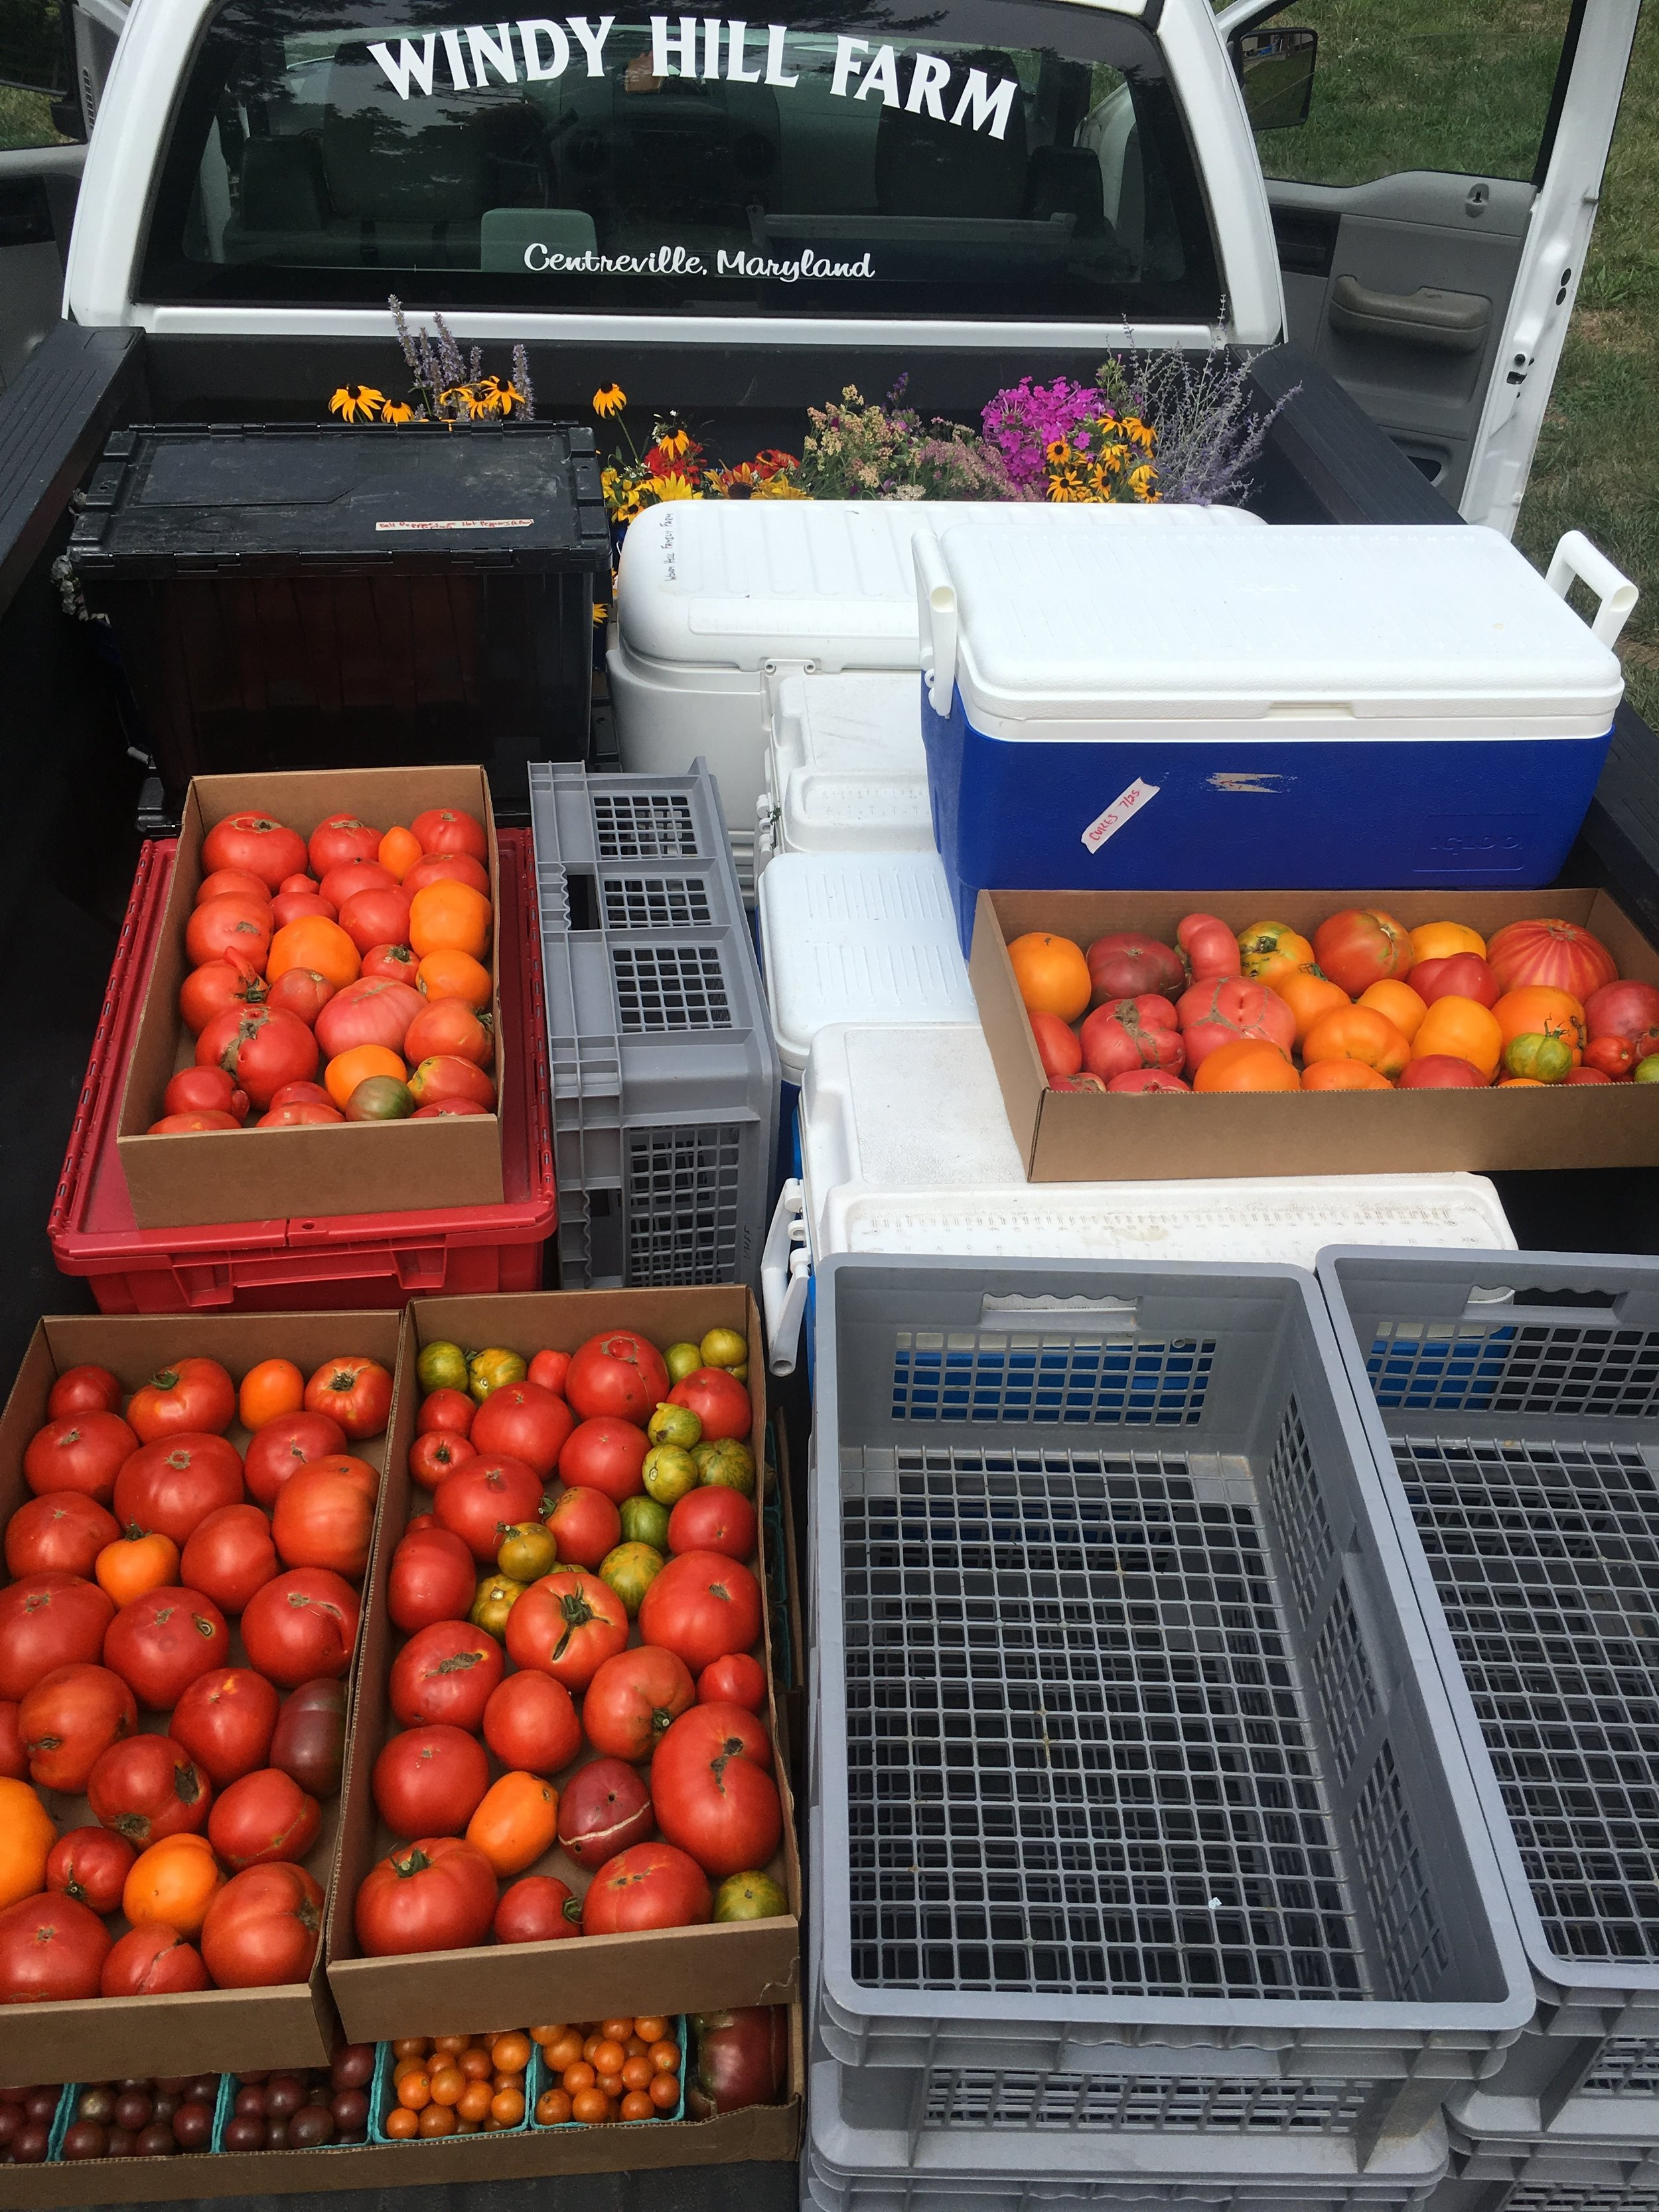 Here's what the farm truck looks like all loaded up for a summer CSA delivery!